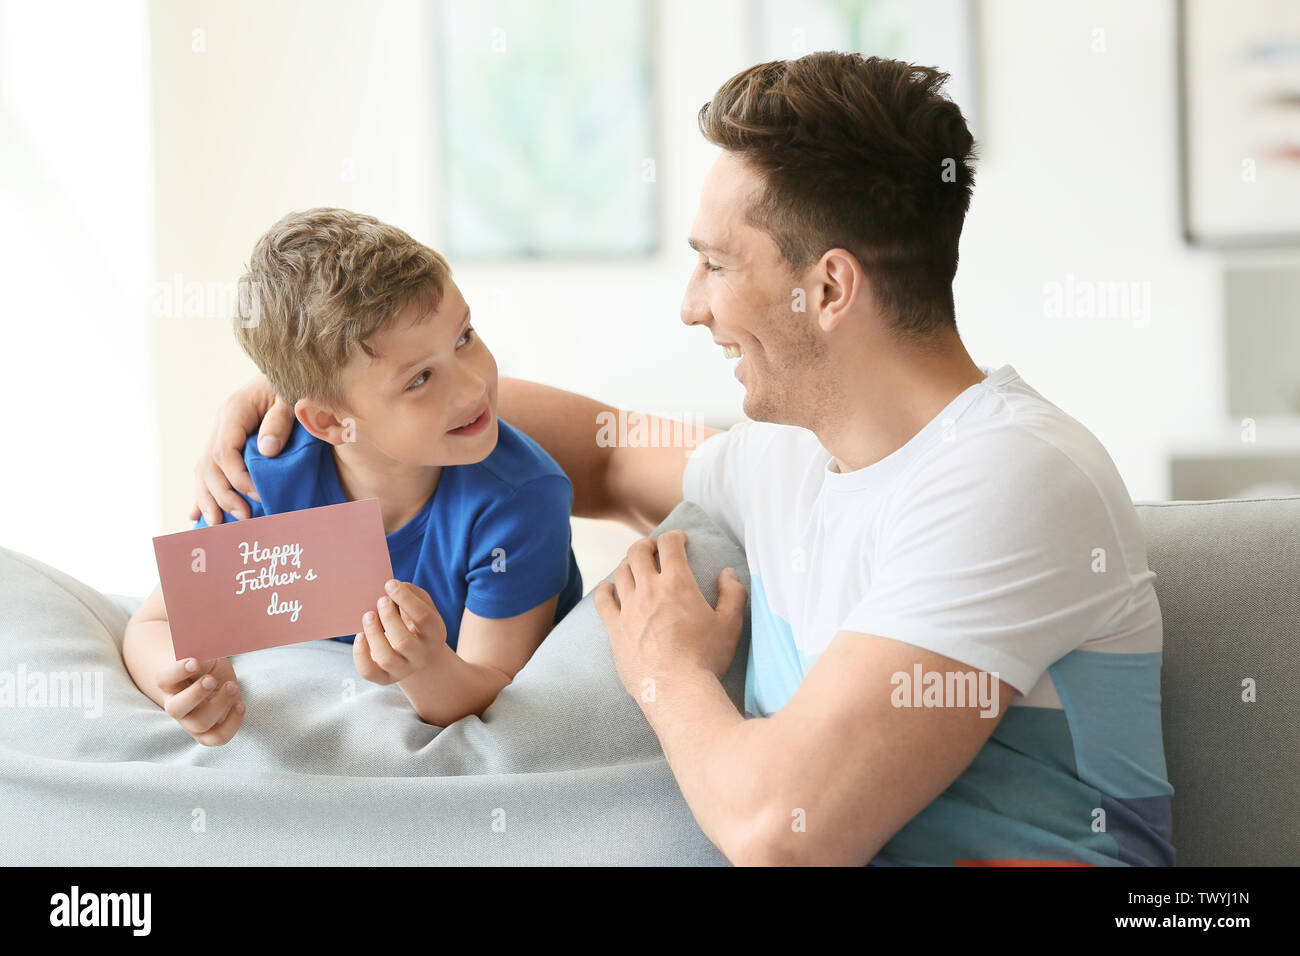 Little boy greeting his dad with Father's Day at home - Stock Image